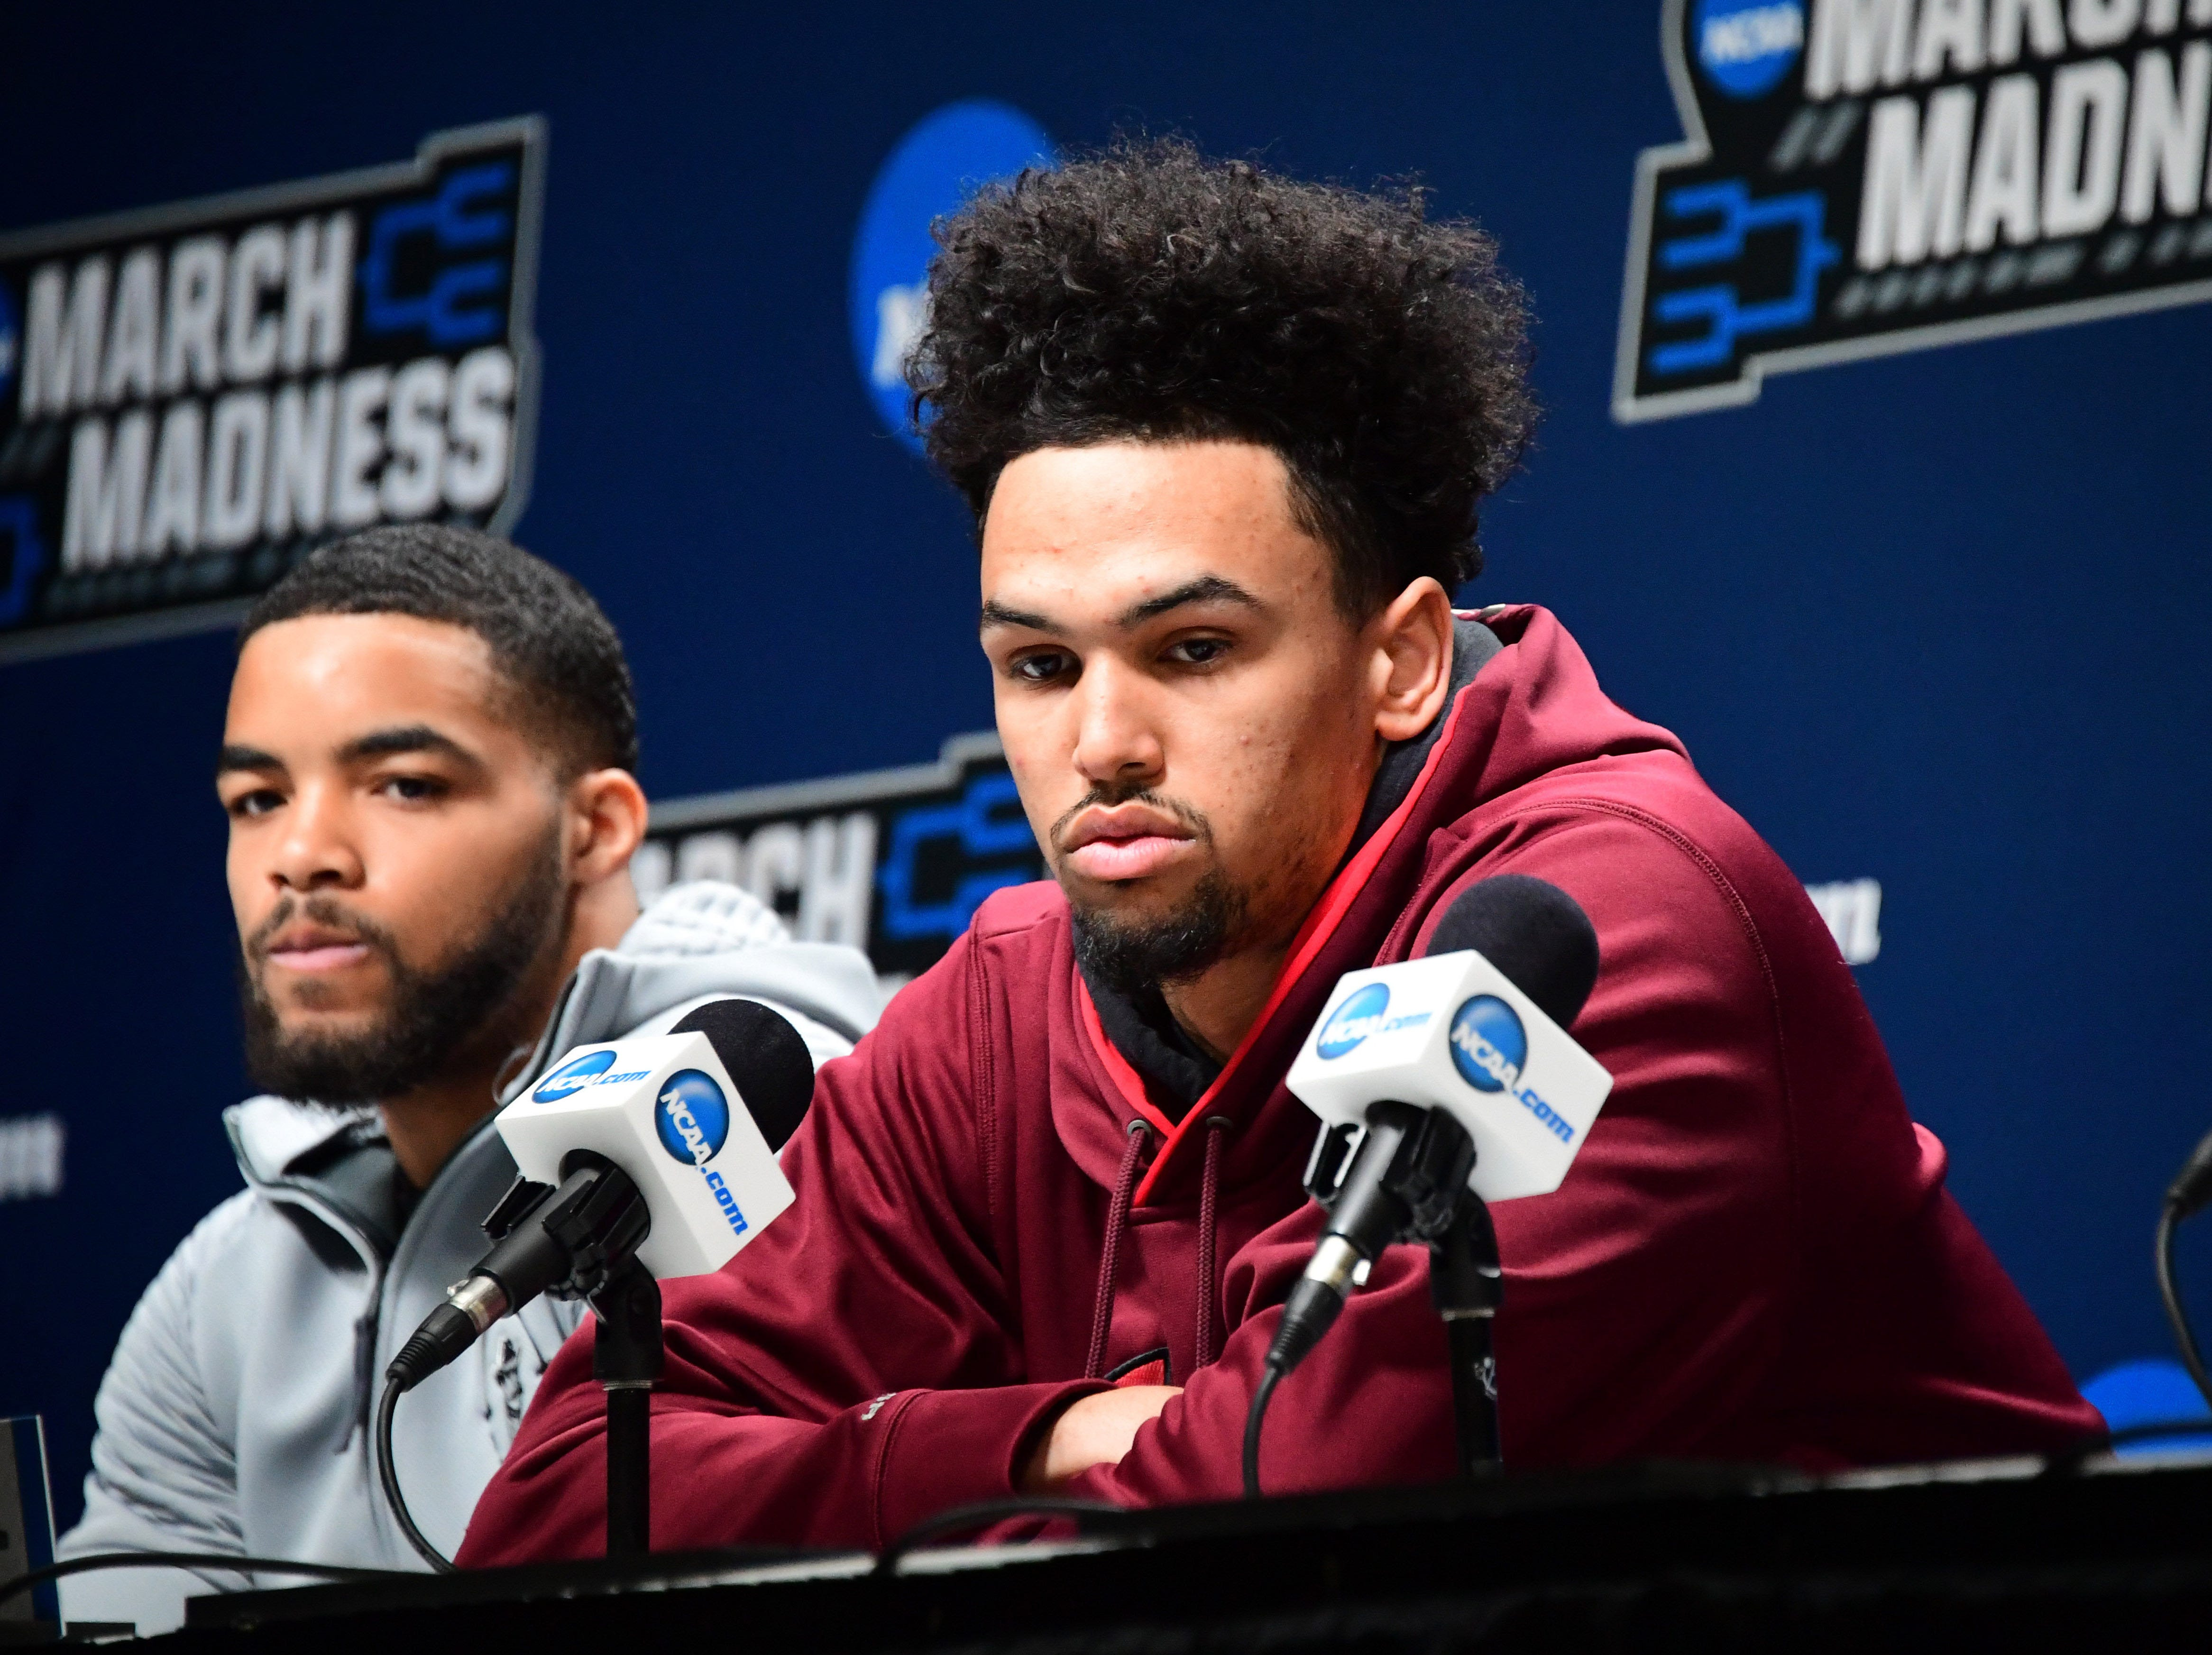 Mar 20, 2019; Salt Lake City, UT, USA; New Mexico State Aggies guard Shunn Buchanan (left) and forward Eli Chuha during a press conference  before the first round of the 2019 NCAA Tournament at Vivint Smart Home Arena. Mandatory Credit: Kirby Lee-USA TODAY Sports